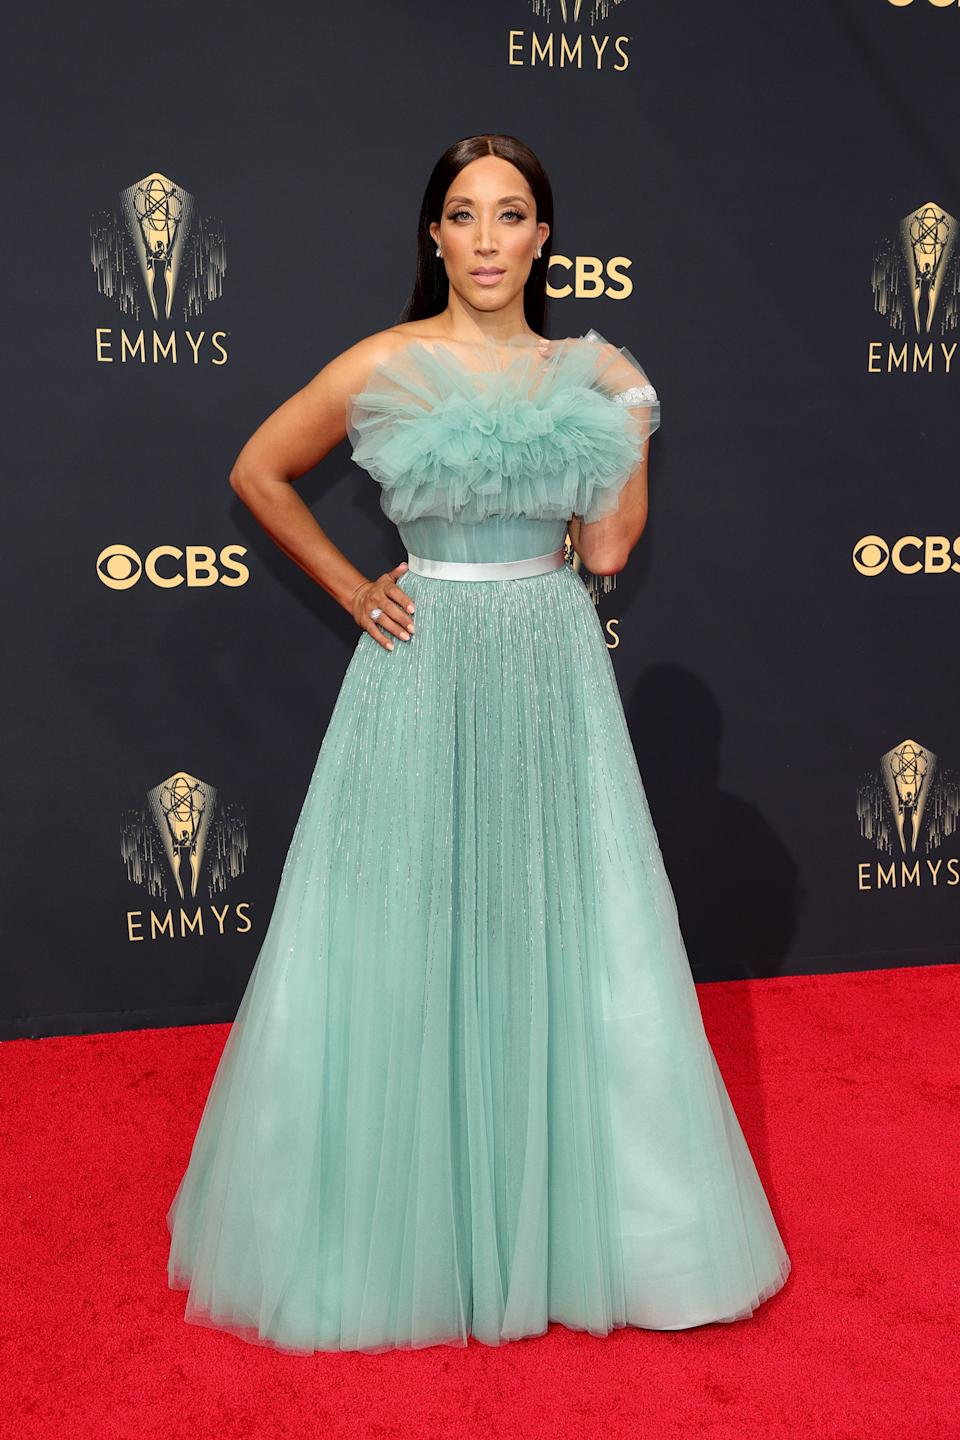 This aqua tulle gown from Jason Wu is classic and oh-so-pretty.